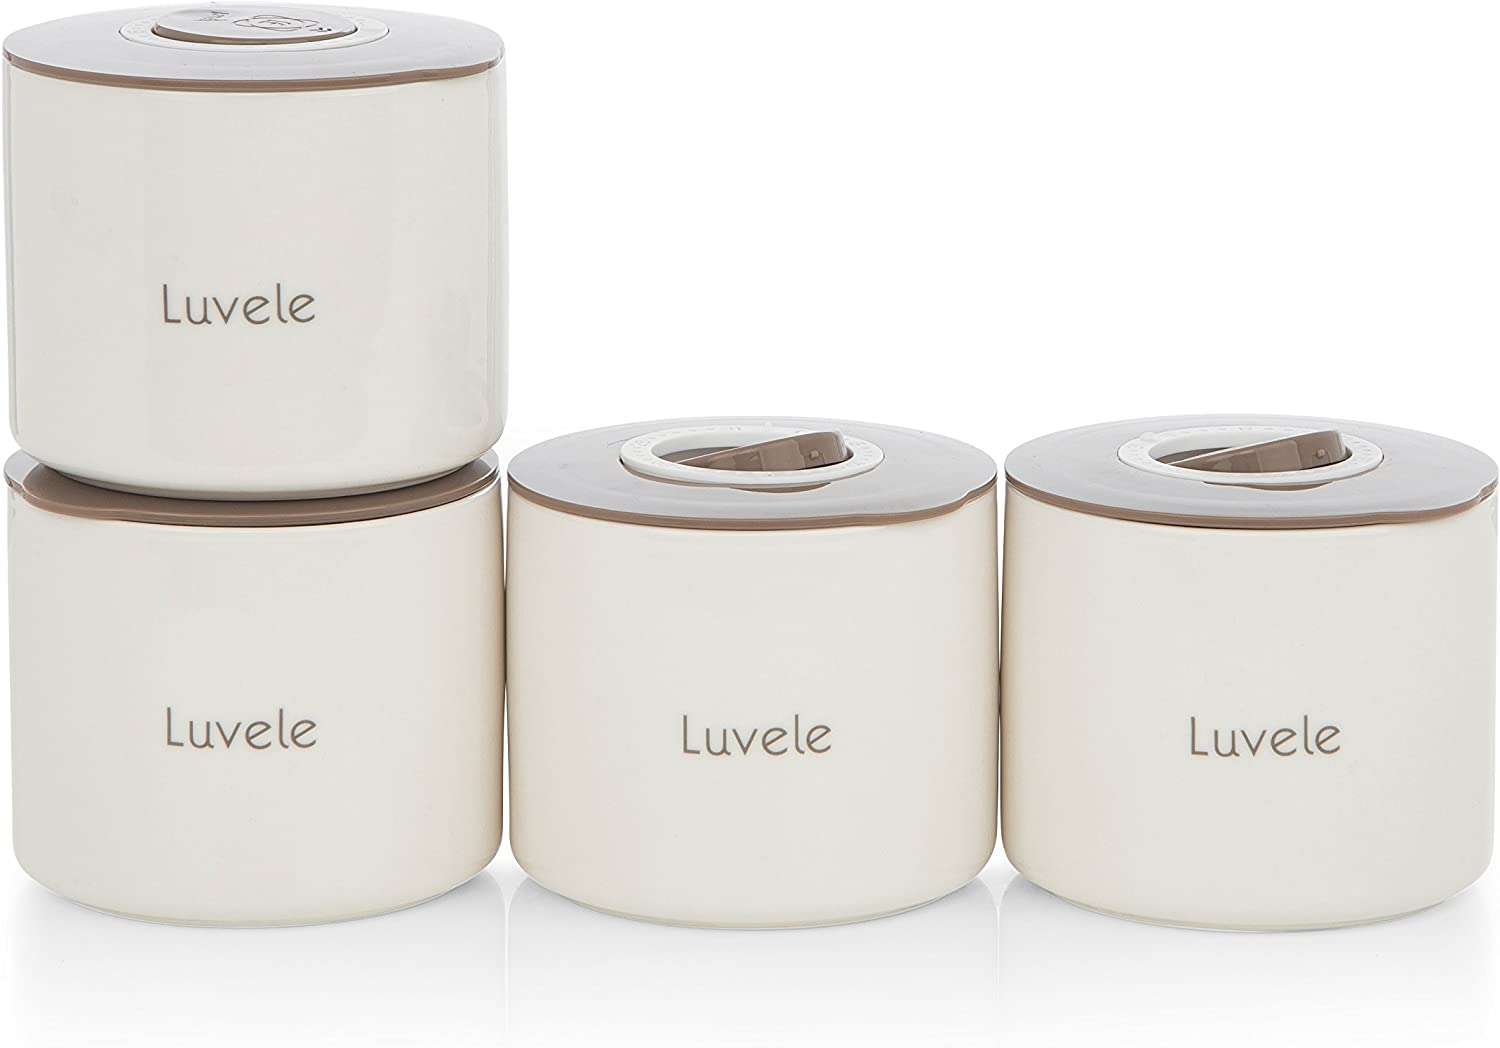 Luvele 4x 400ml ceramic yogurt jars Compatible with Pure Yogurt Maker